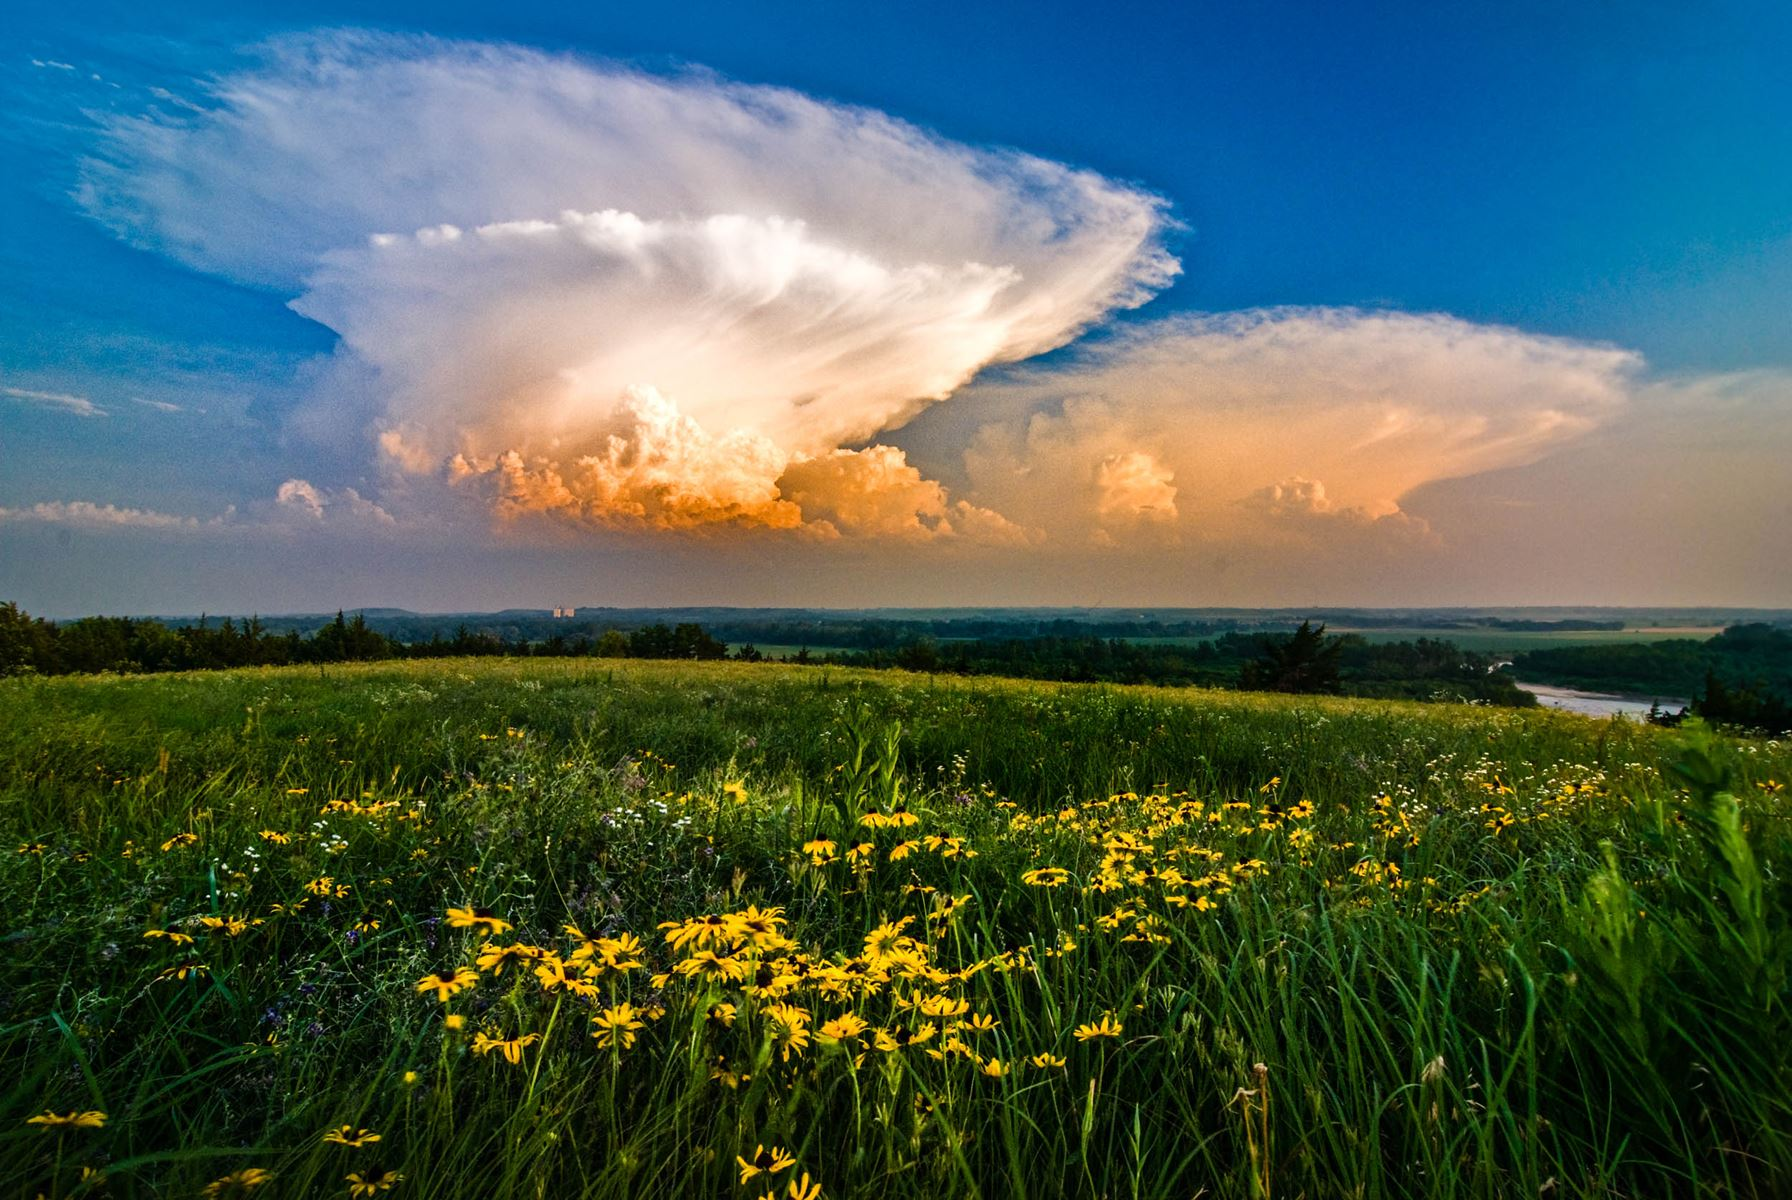 Storm clouds building over a green field with prairie flowers